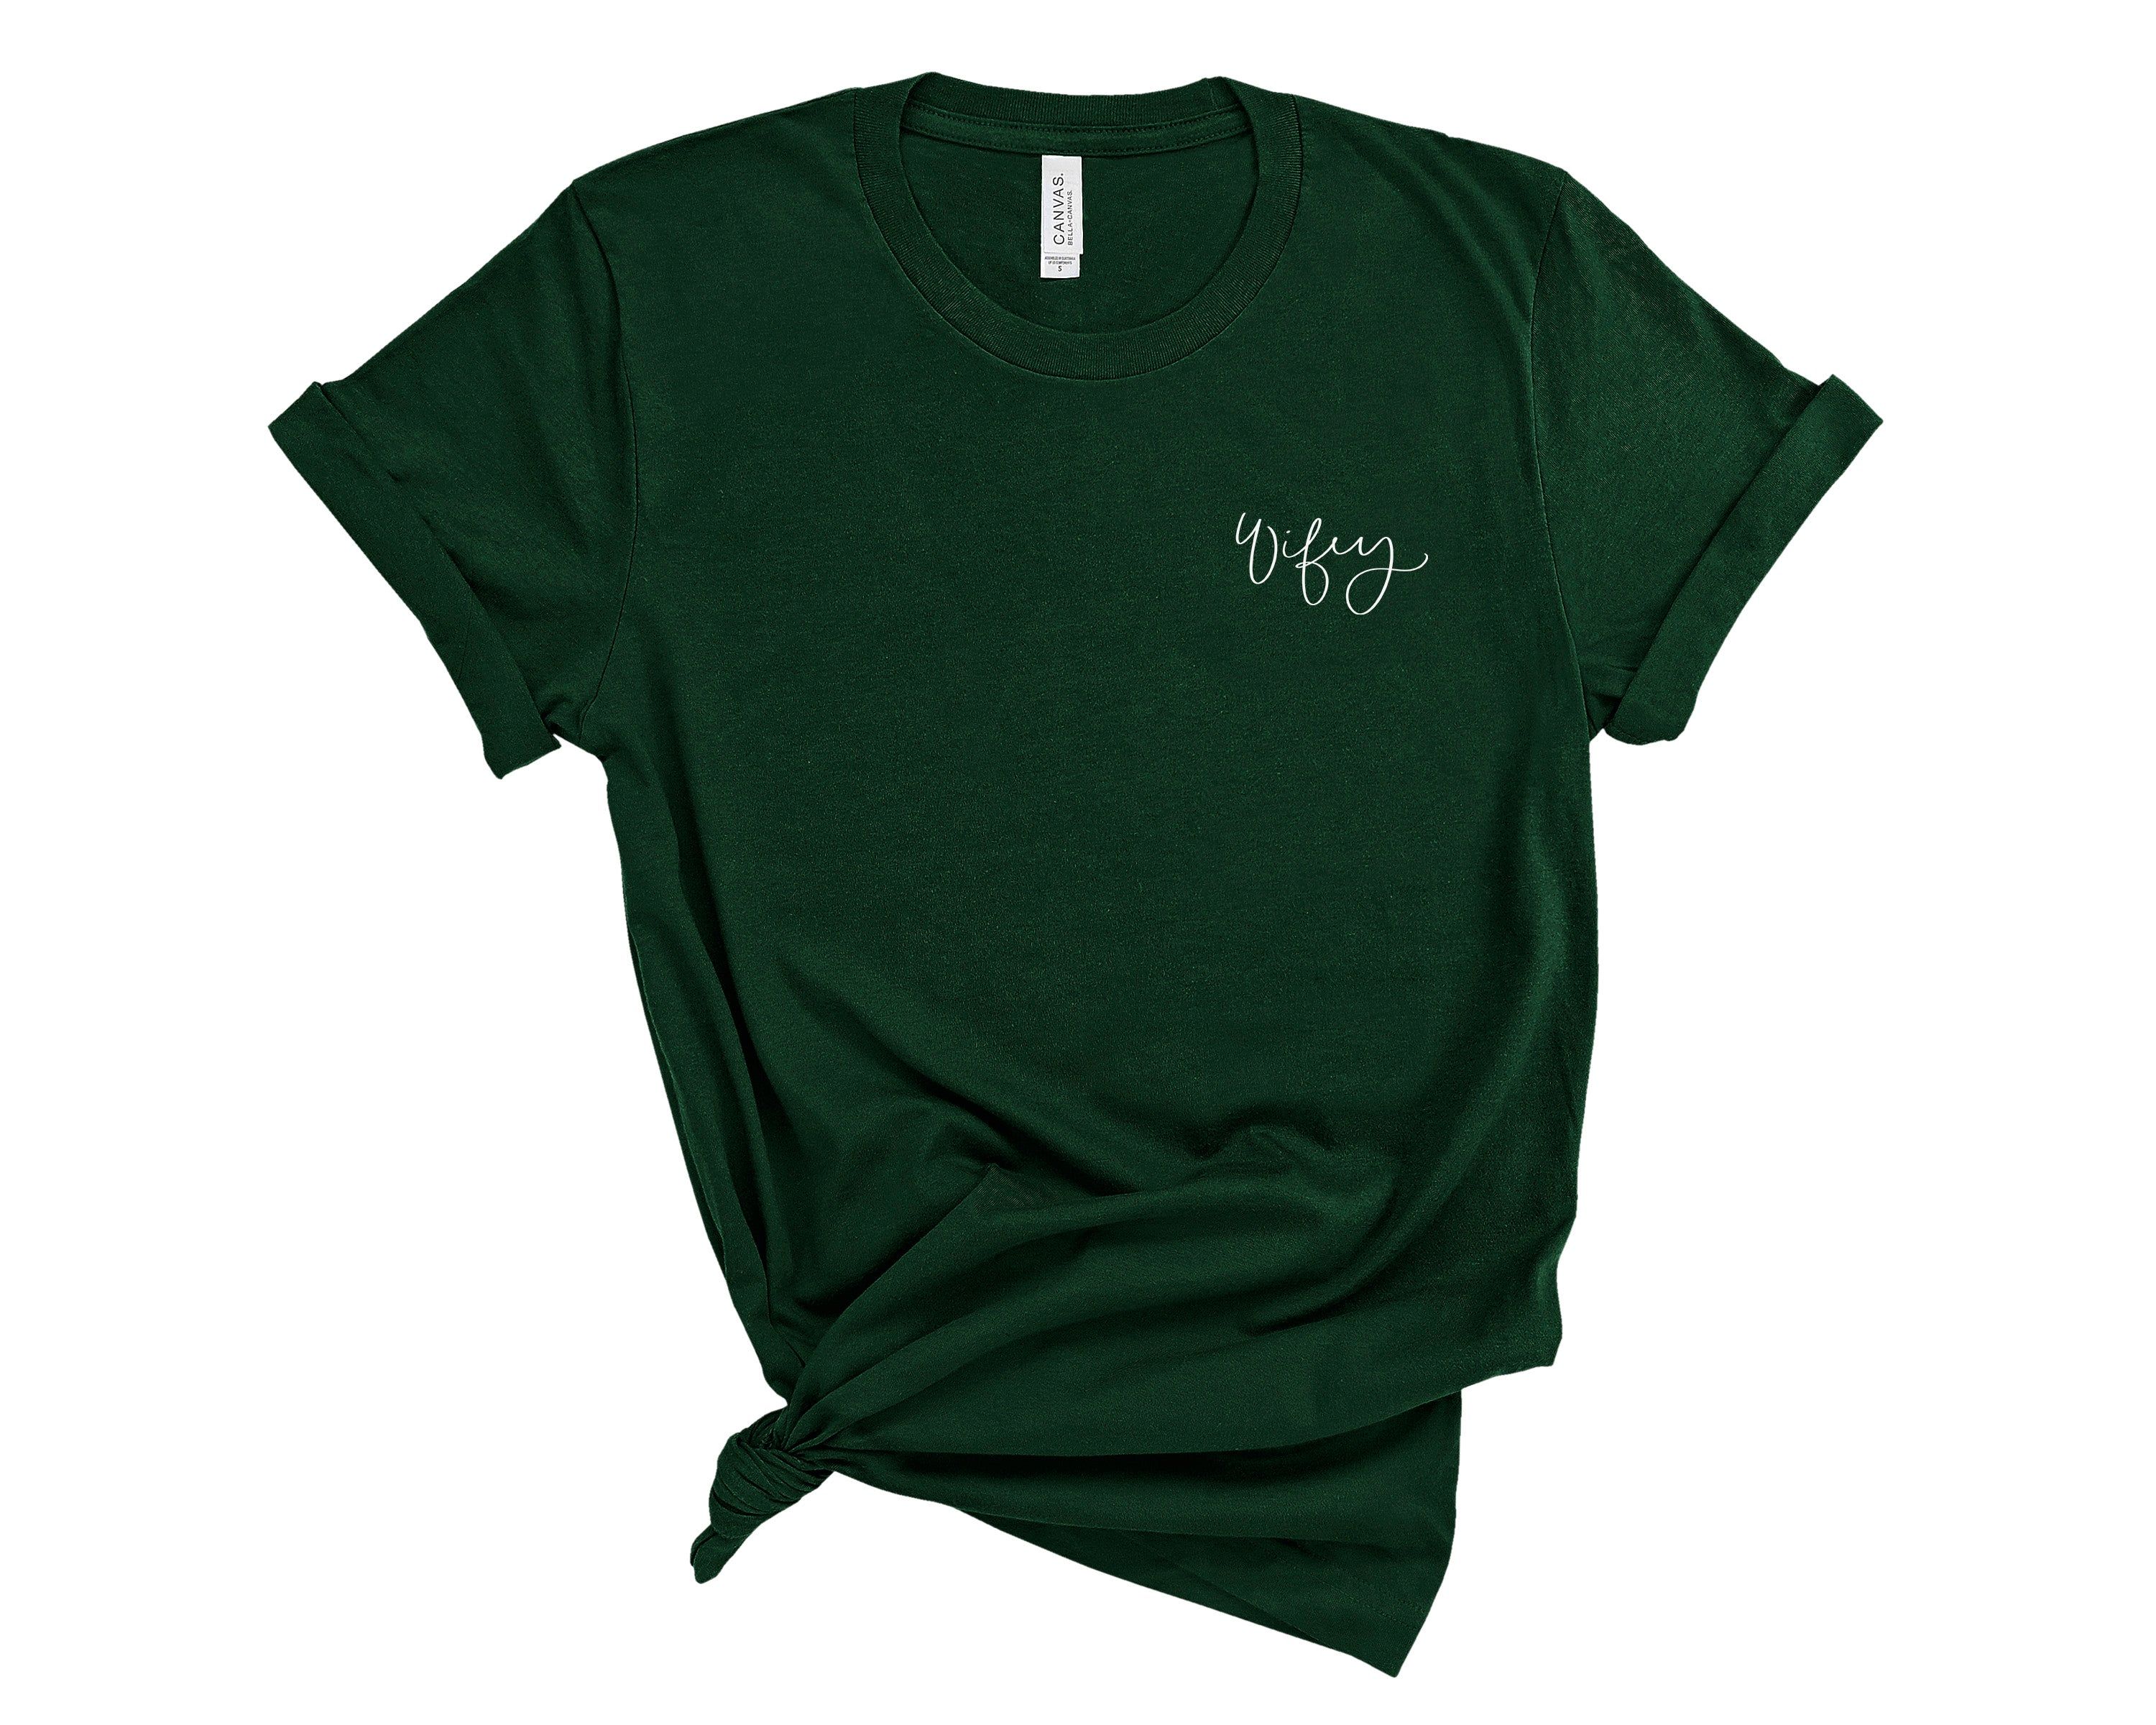 Wifey Embroidered Shirt